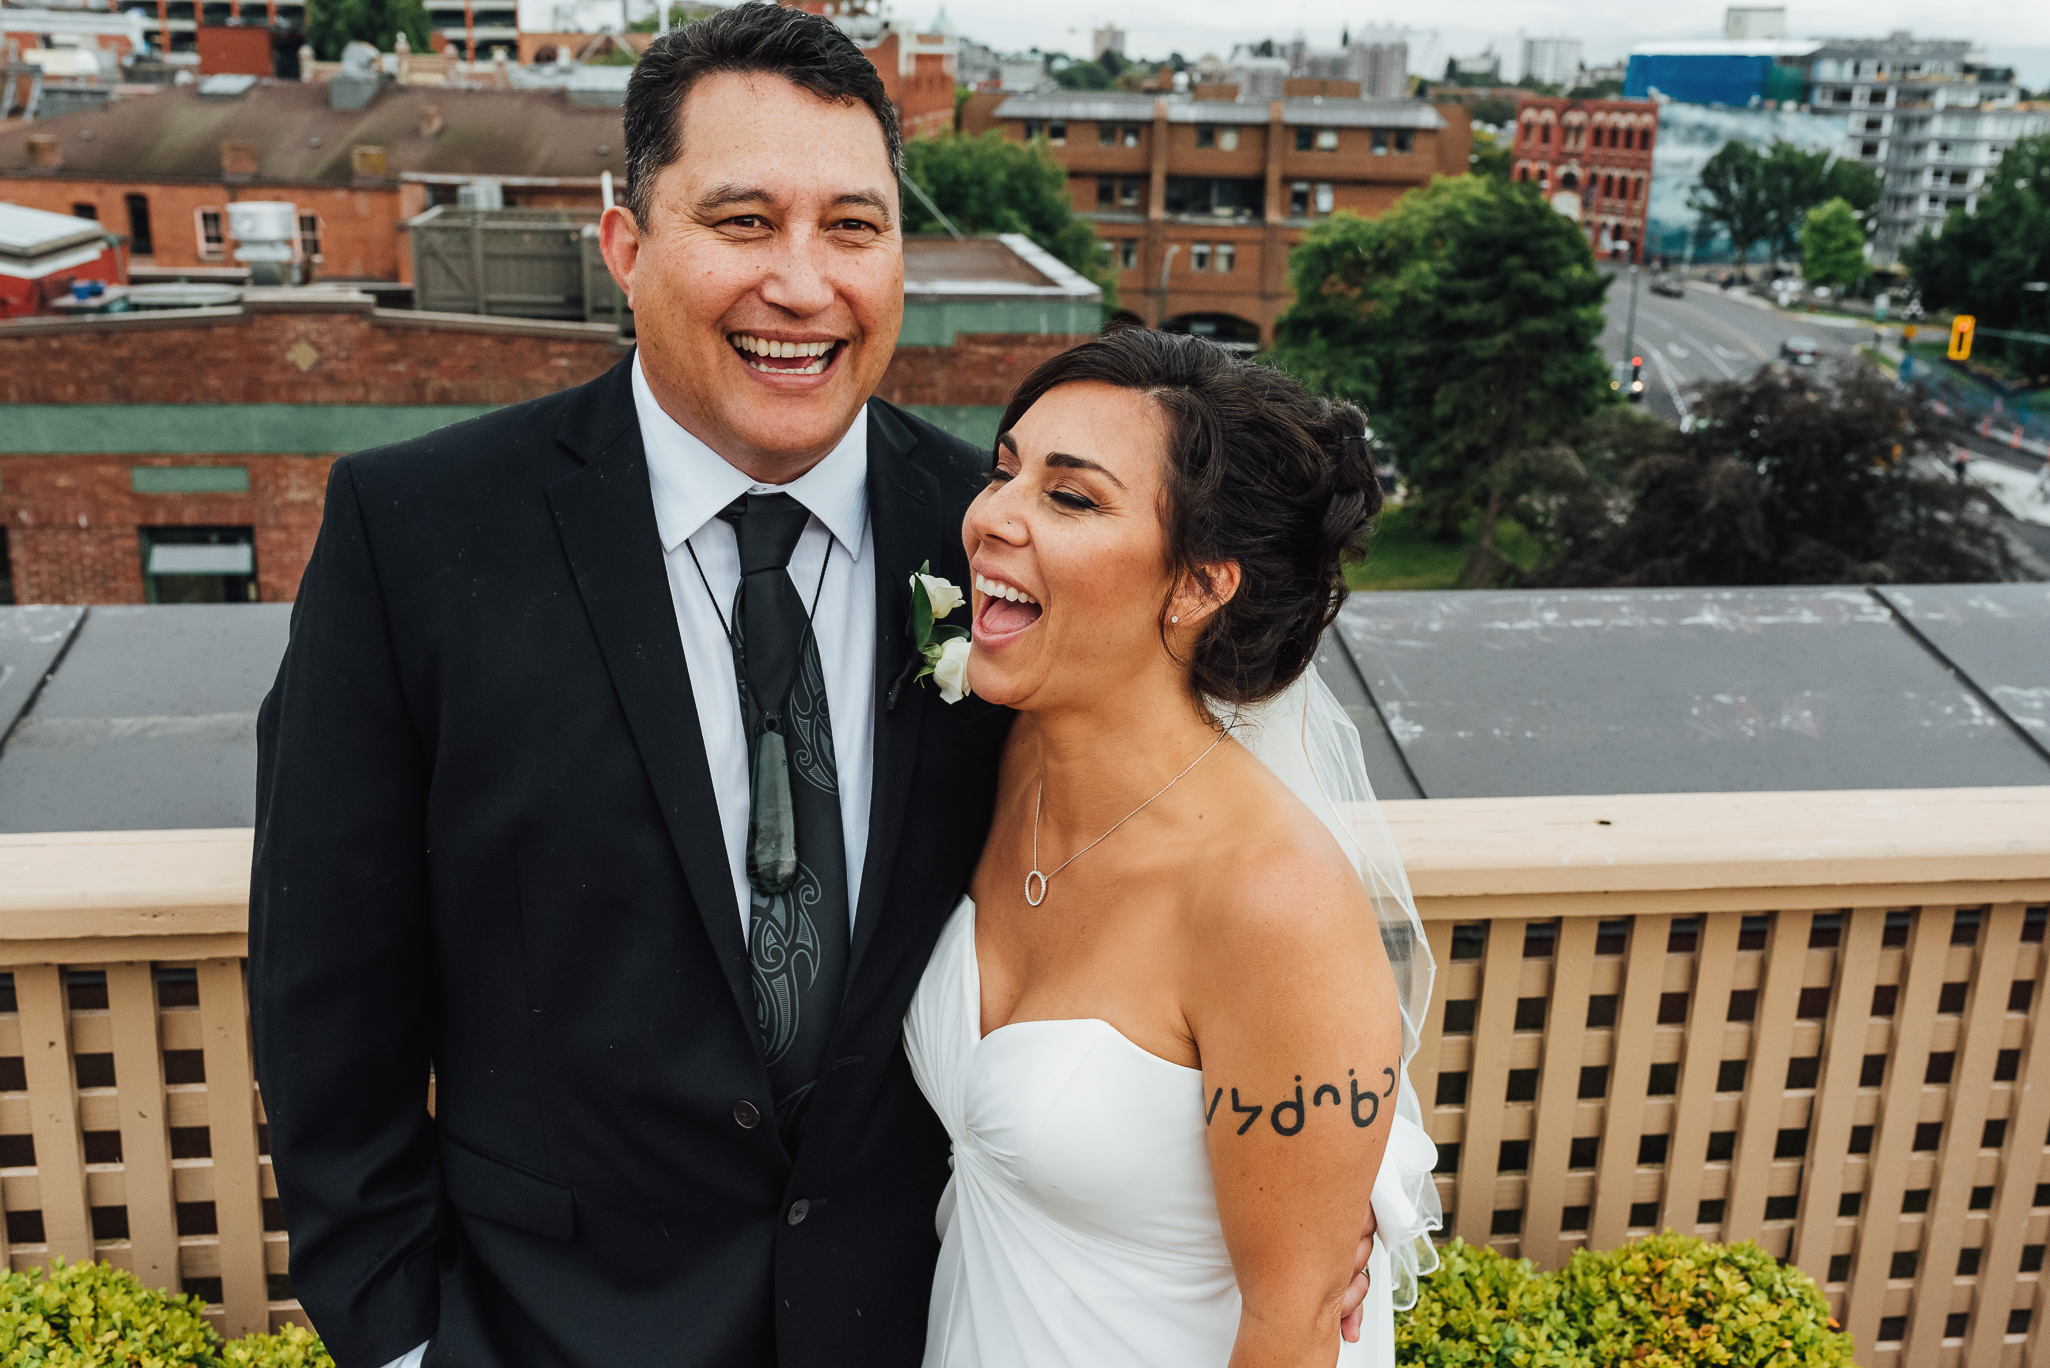 ONOWA + PAUL // SWAN'S HOTEL ROOFTOP WEDDING